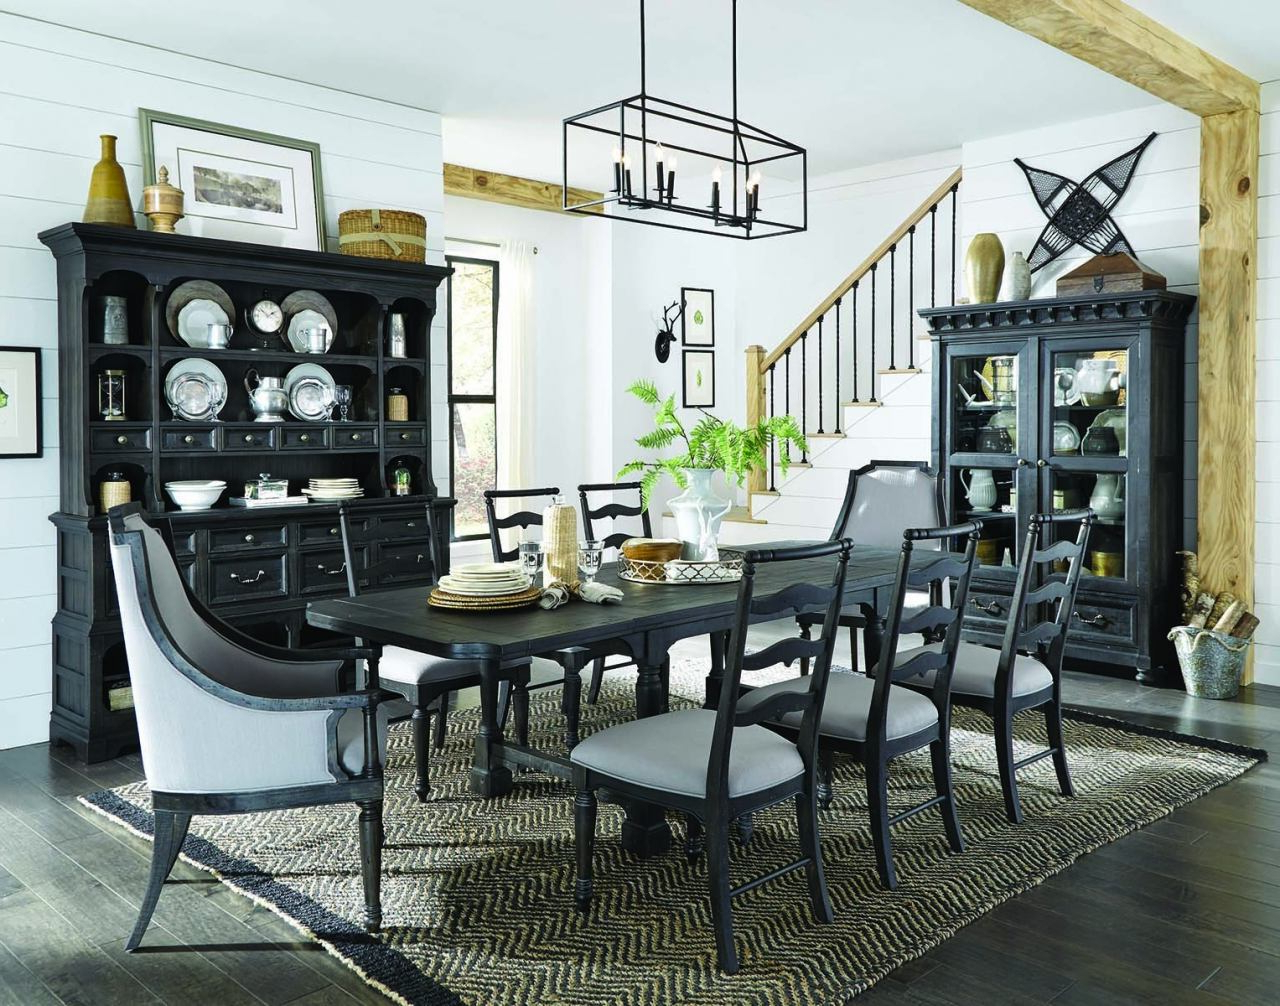 2017 Bedfo 3 Piece Dining Sets With Regard To Magnussen Furniture Bedford Corners 7pc Rectangular Dining Set In Anvil Black (View 5 of 20)